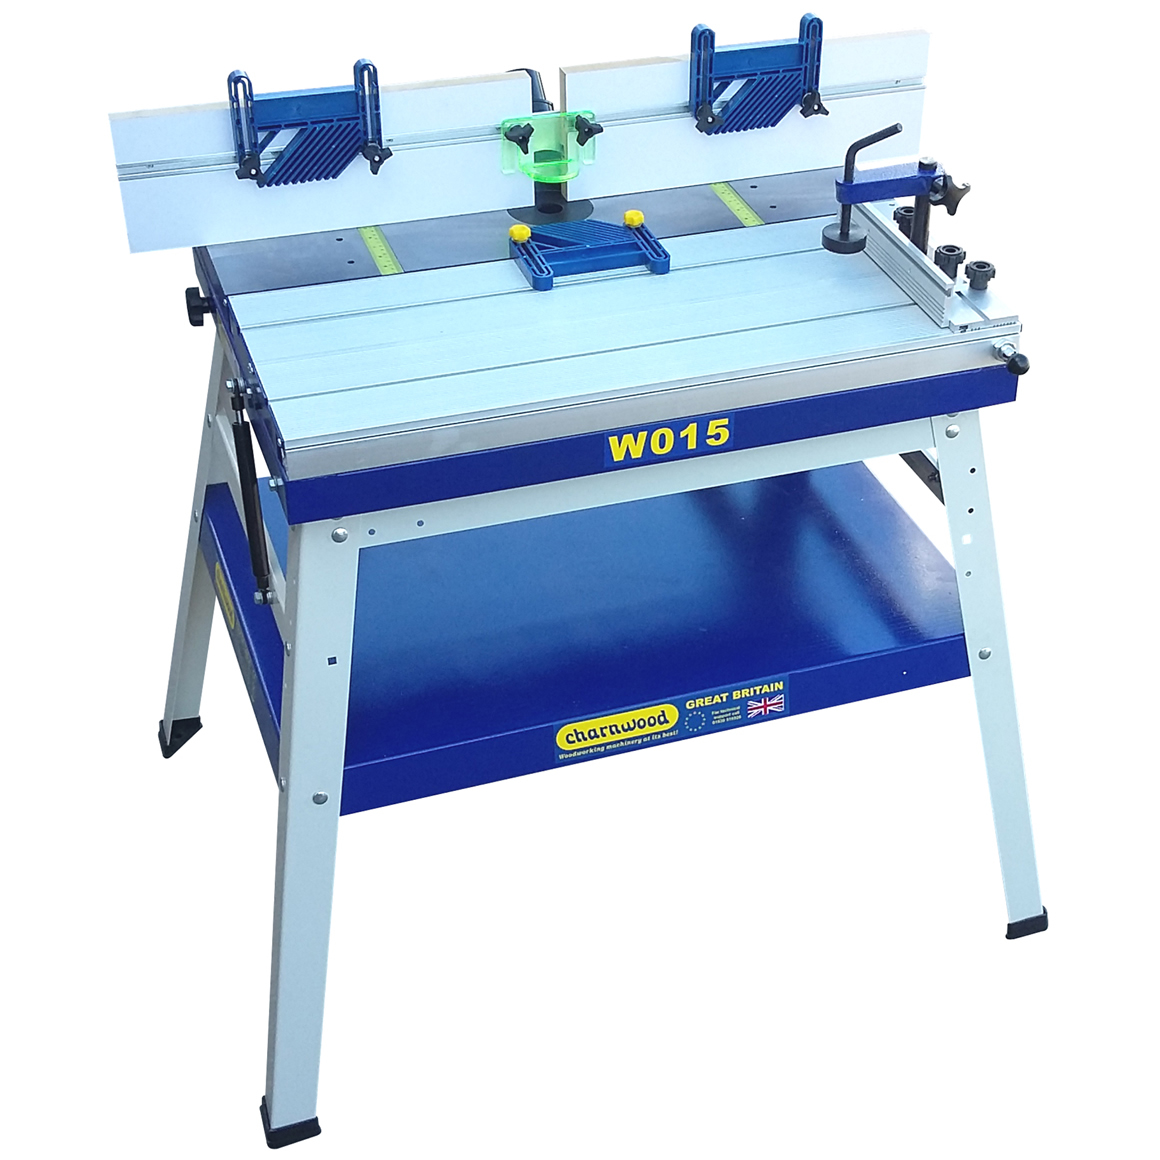 Charnwood W015 Cast Iron Router Table - W015 - Poolewood